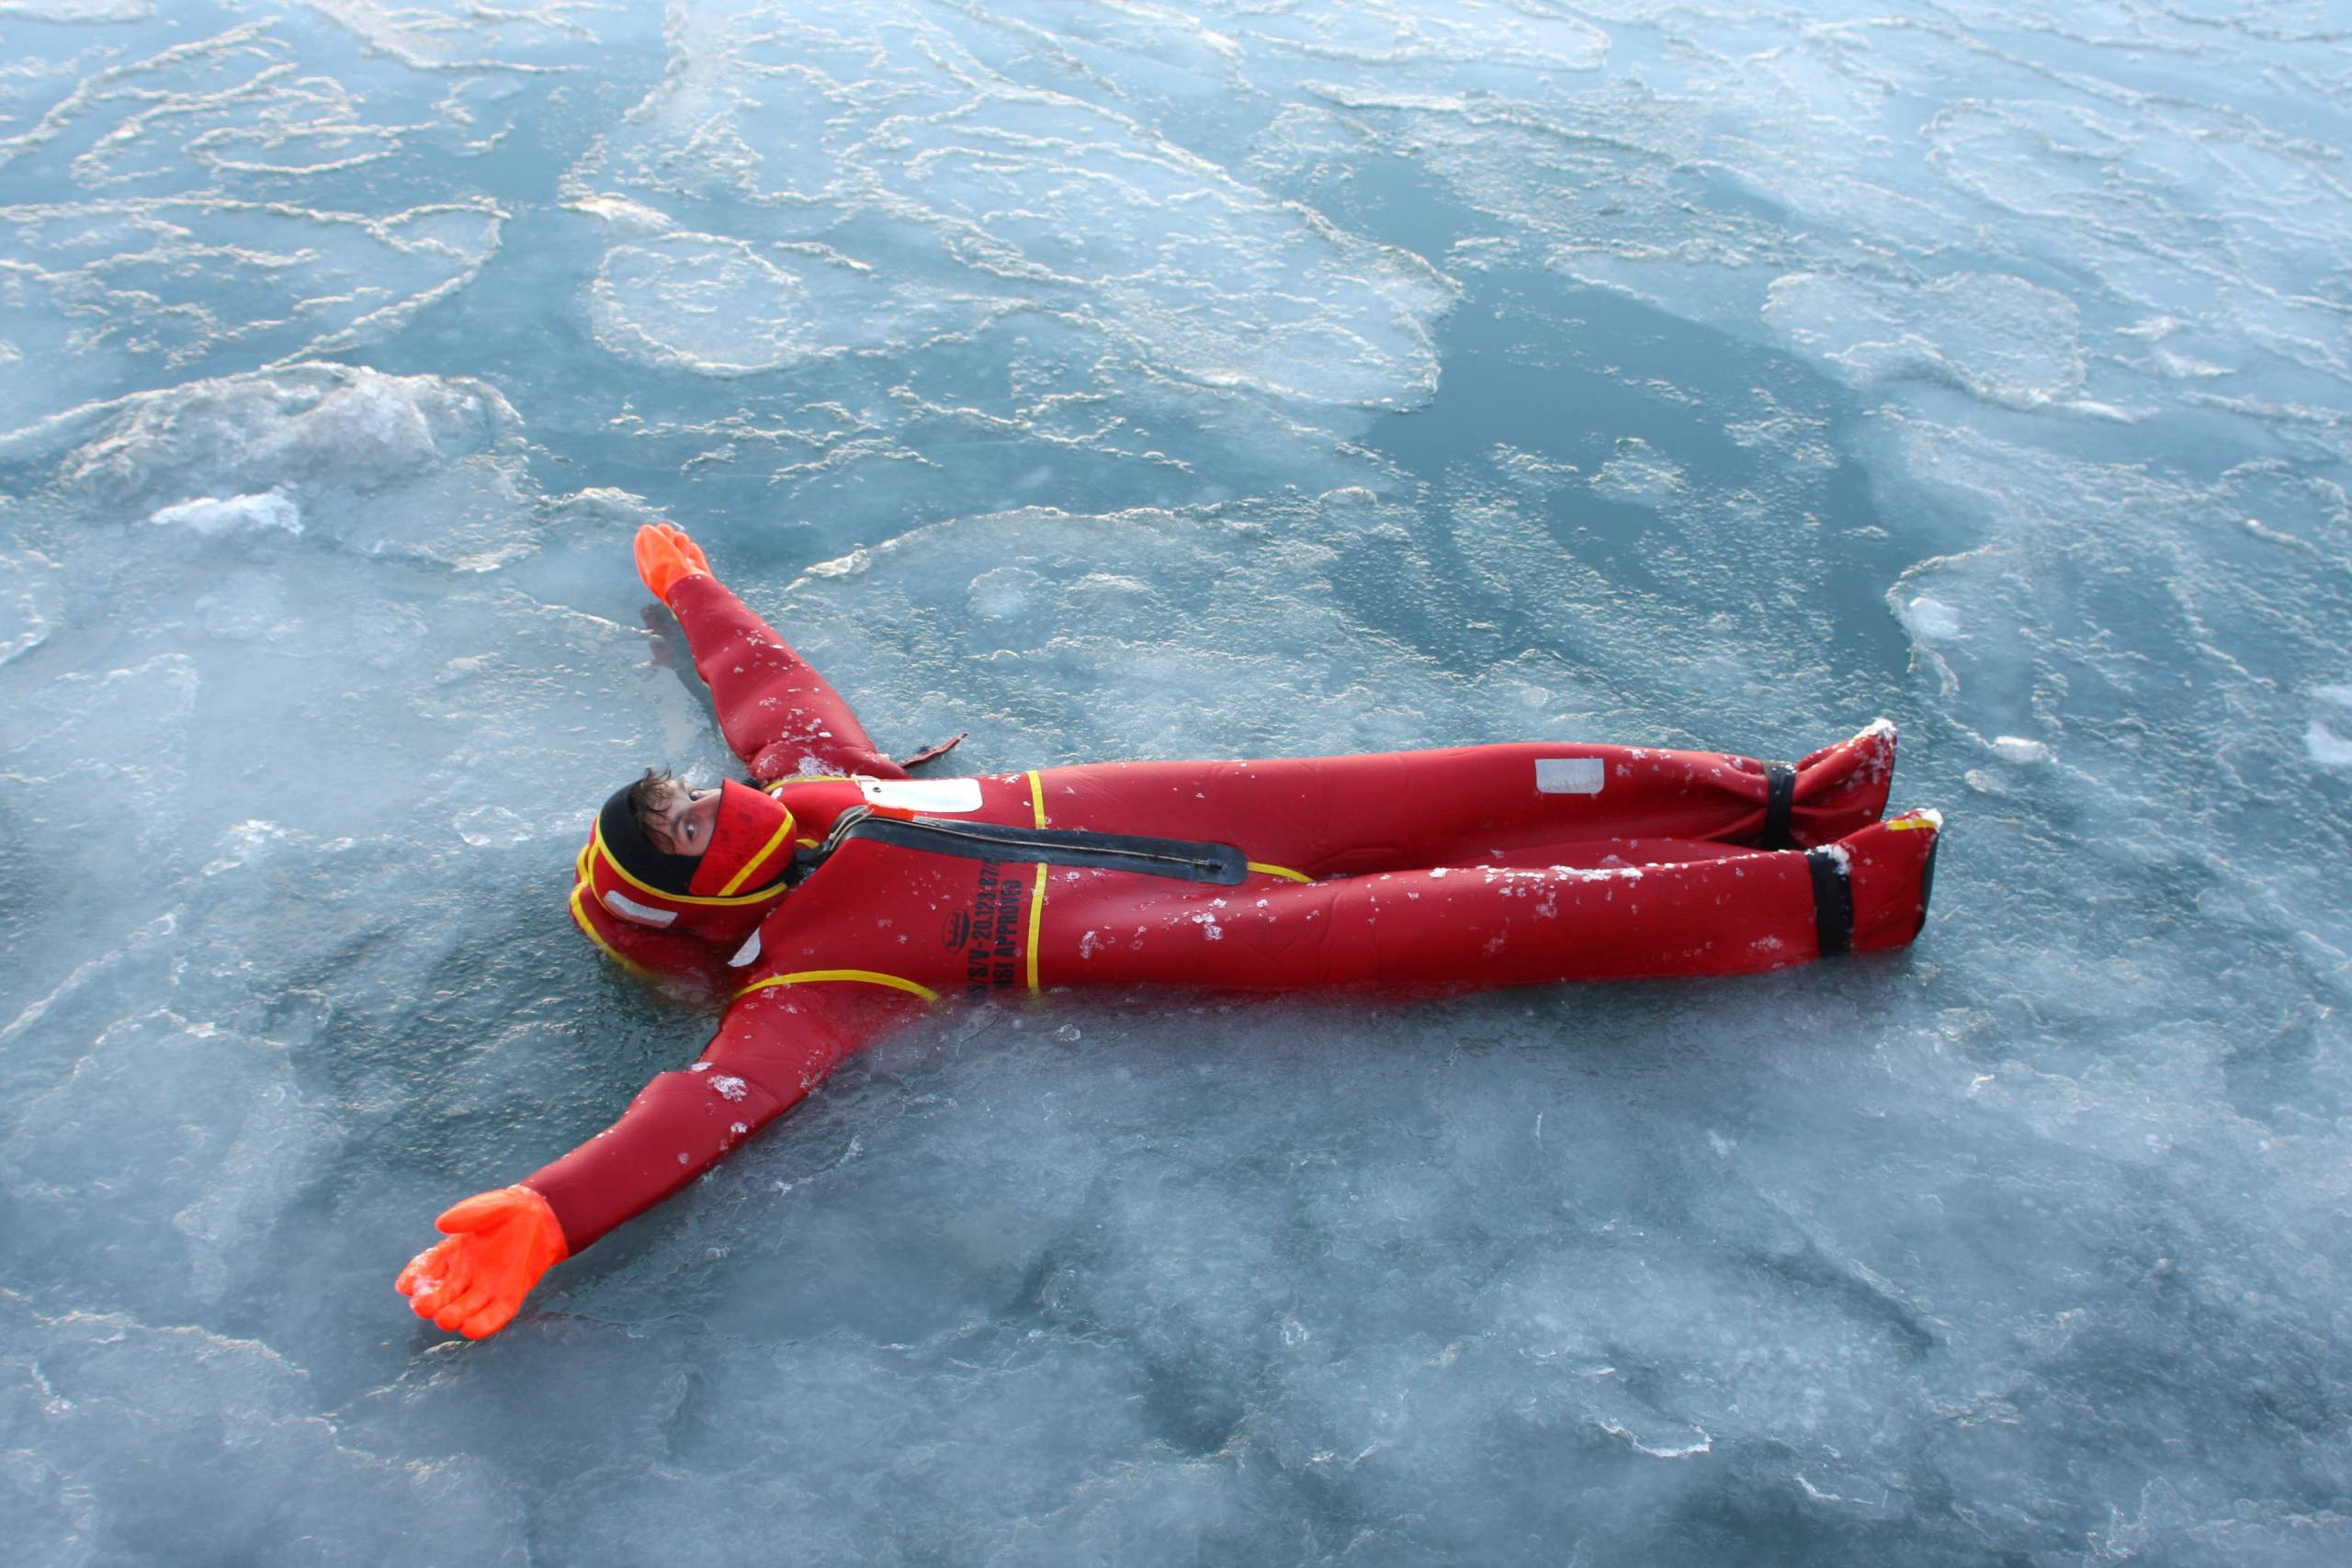 man in a survival suit floats in Arctic water